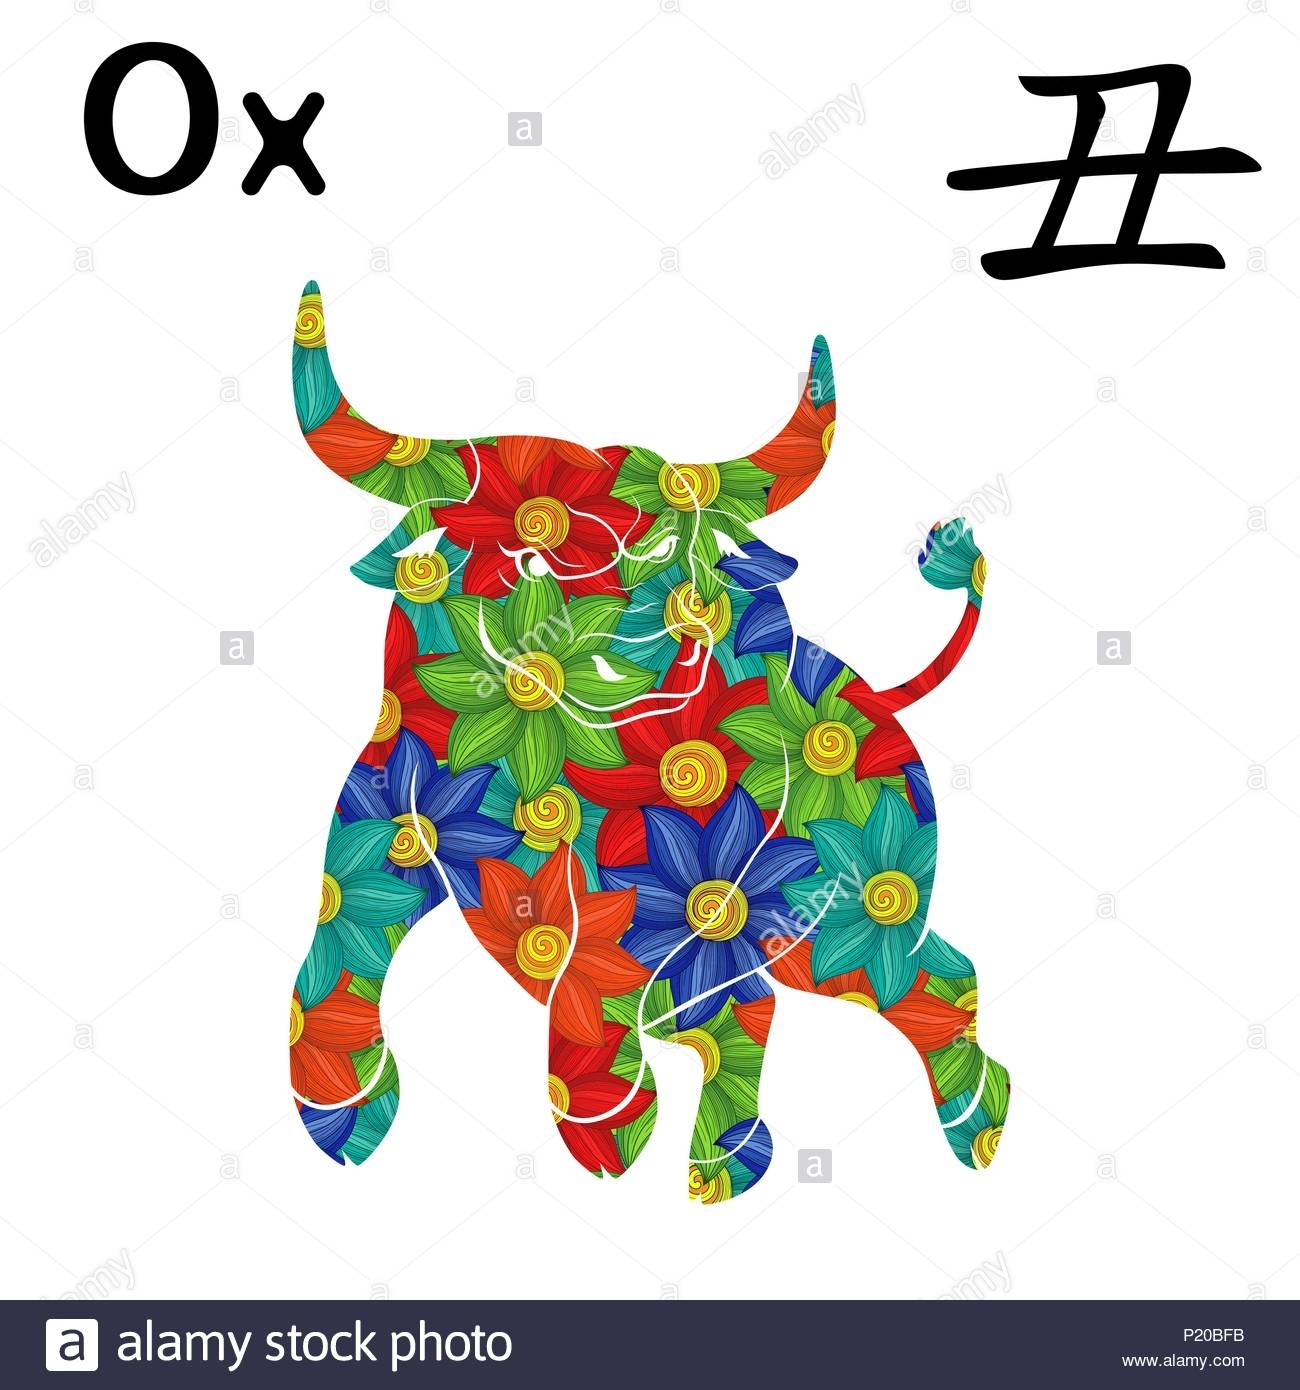 Chinese Zodiac Sign Ox, Symbol Of New Year On The Eastern